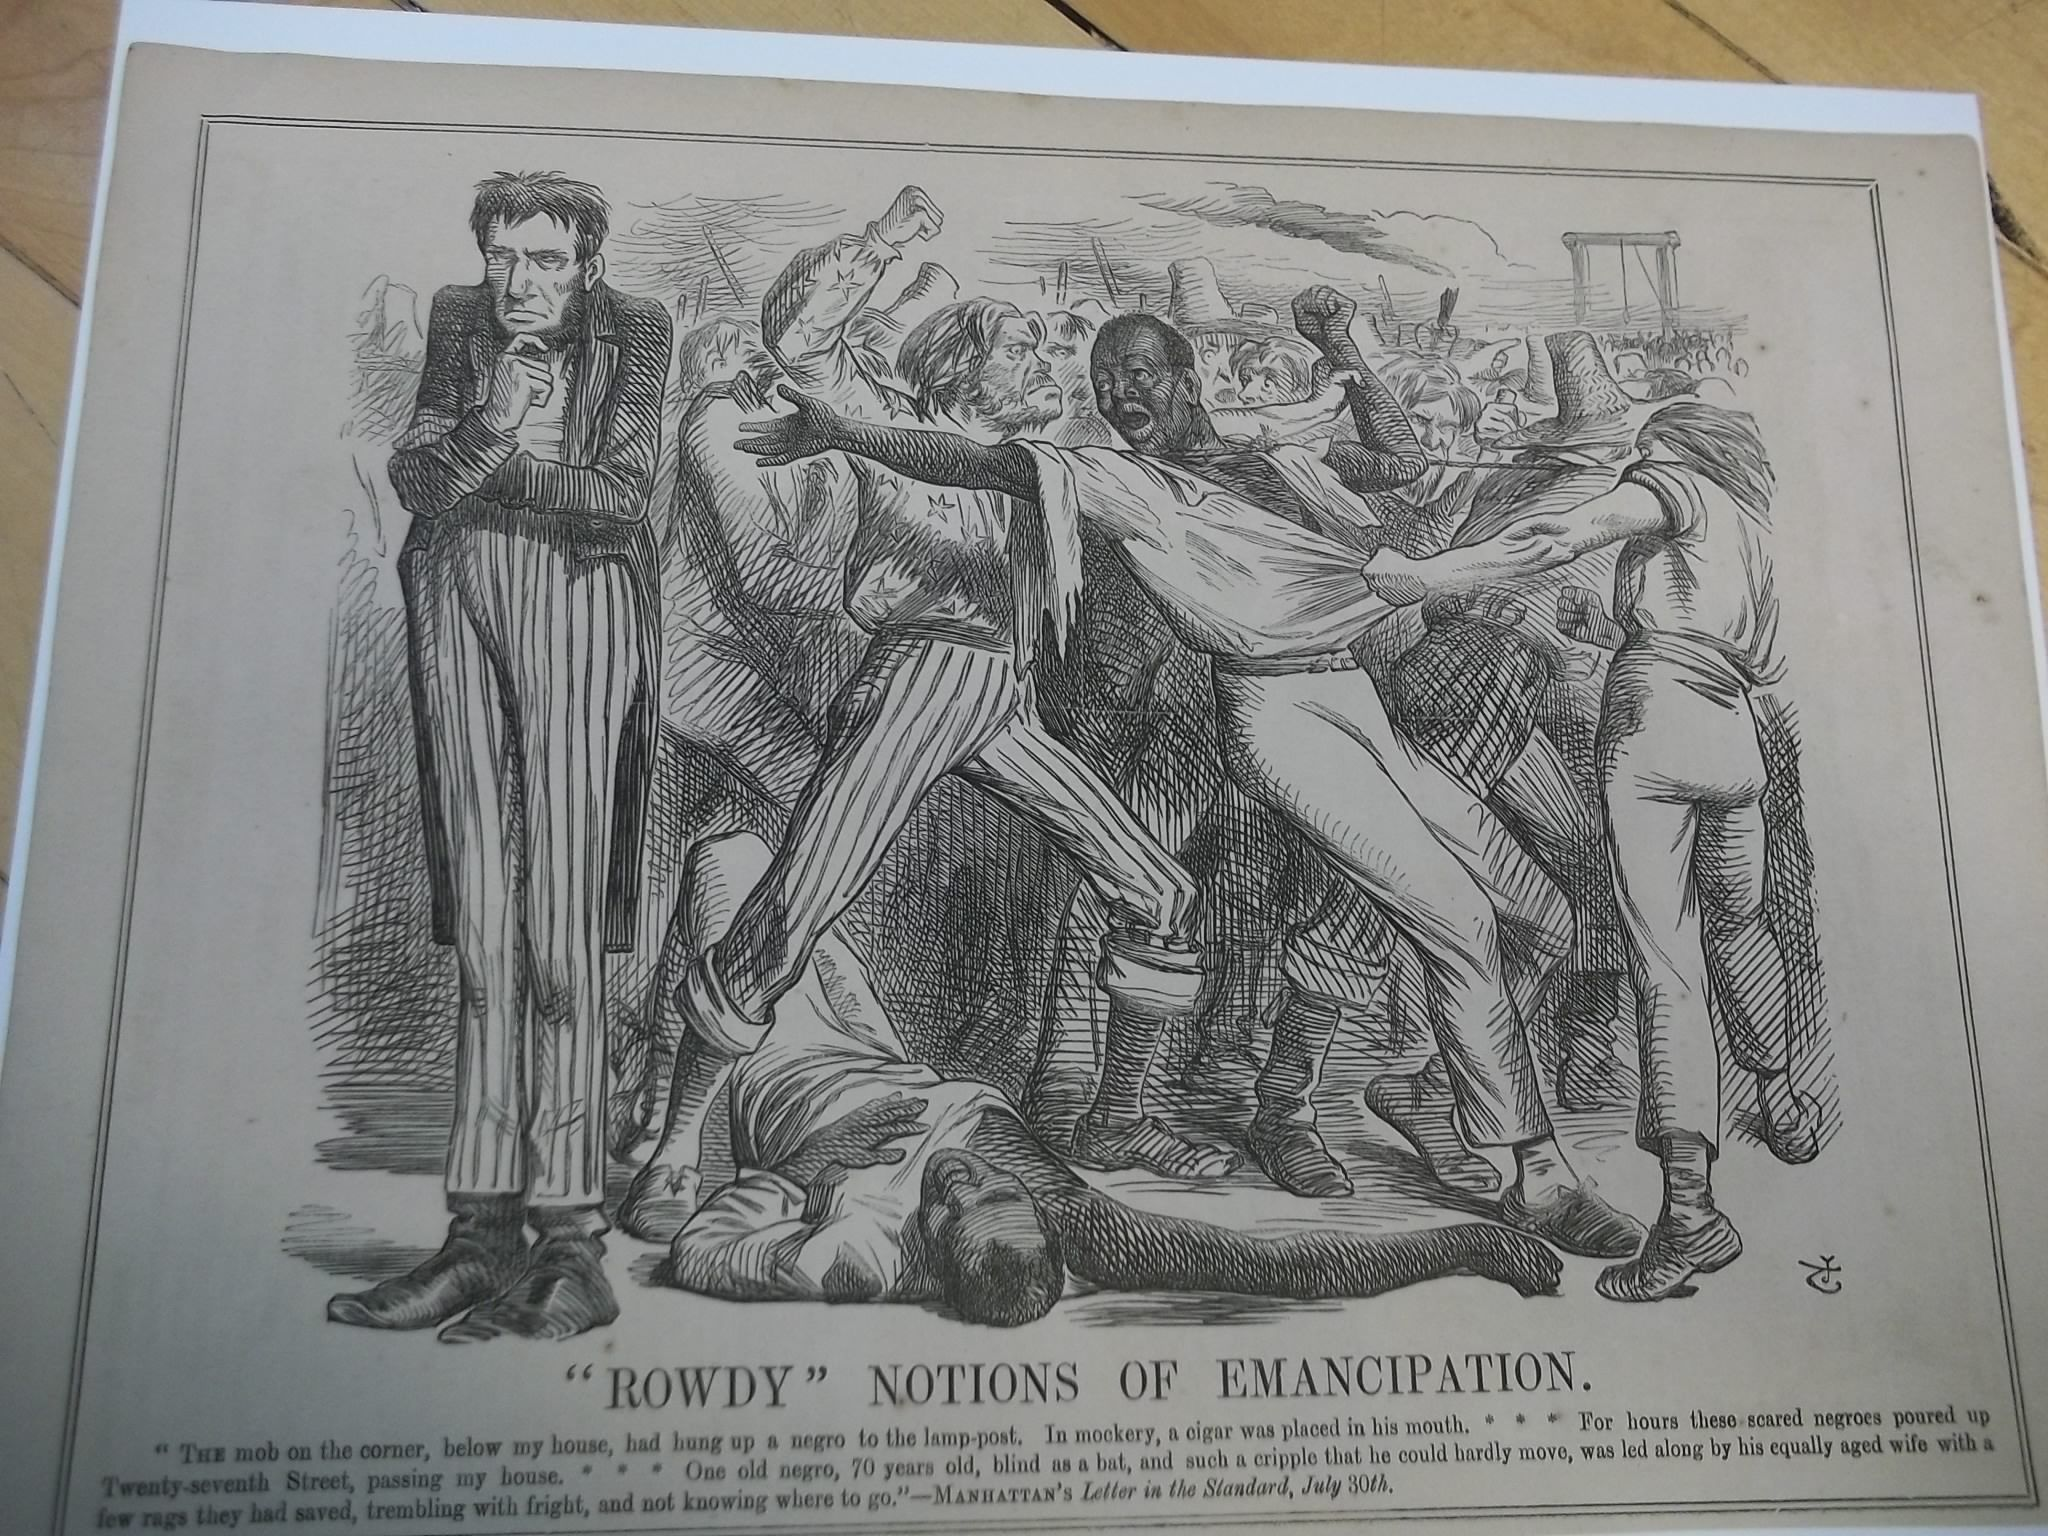 the issue of slavery in the civil war The civil war in the united states began in 1861, after decades of simmering tensions between northern and southern states over slavery, states' rights and westward expansion the election of.